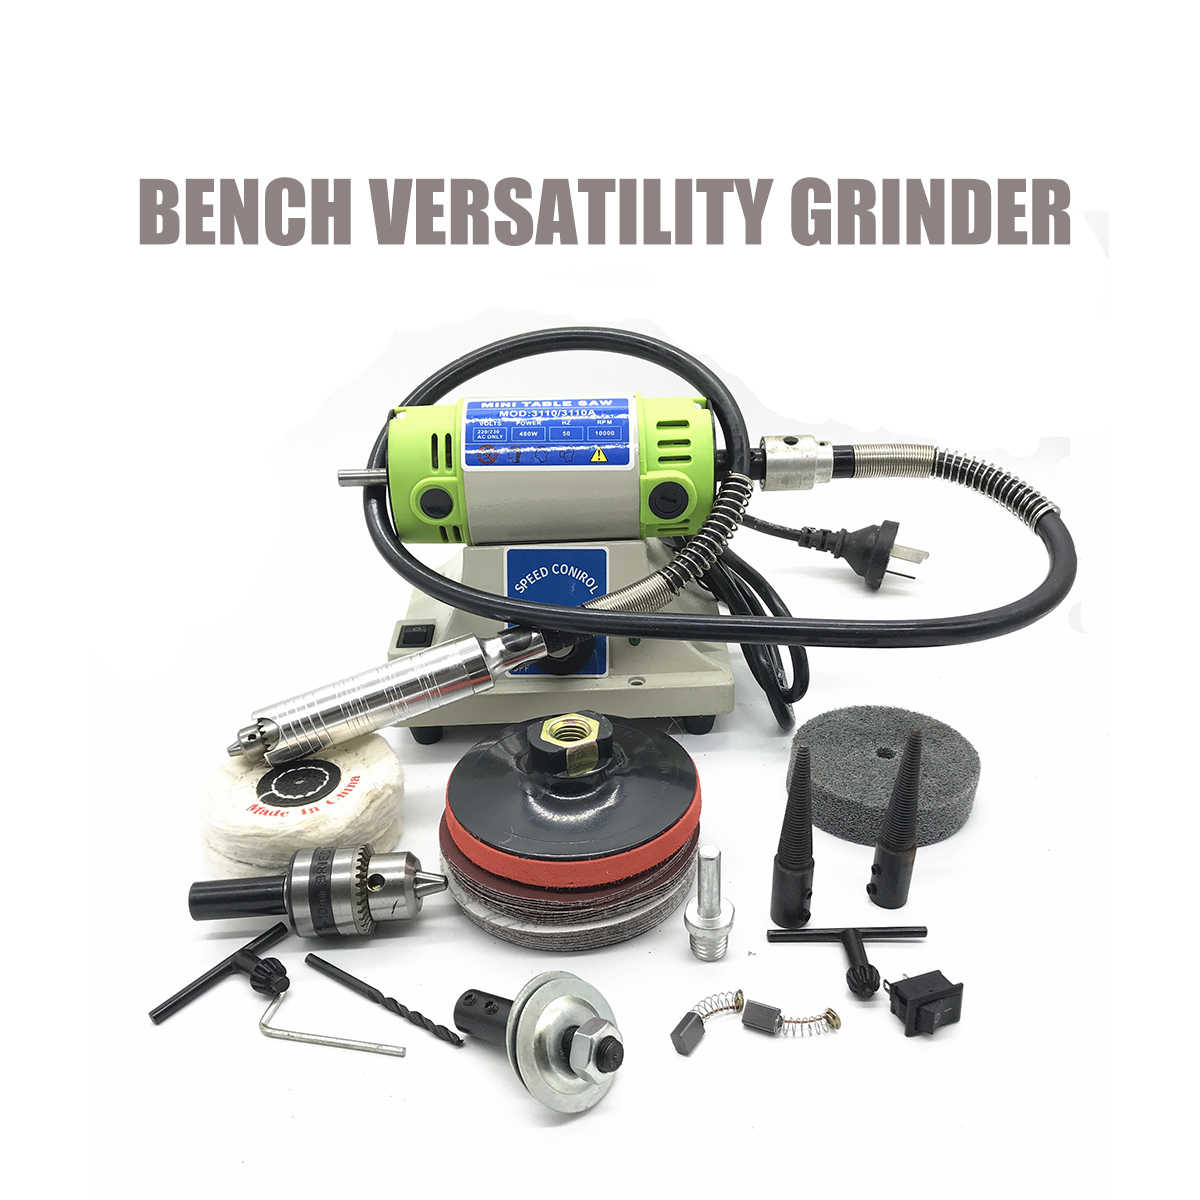 Mini Bench Grinder Electric Versatility Grinding Machine 4mm Chuck Variable Speed Rotary Tool With Flexible Tube Power Tools